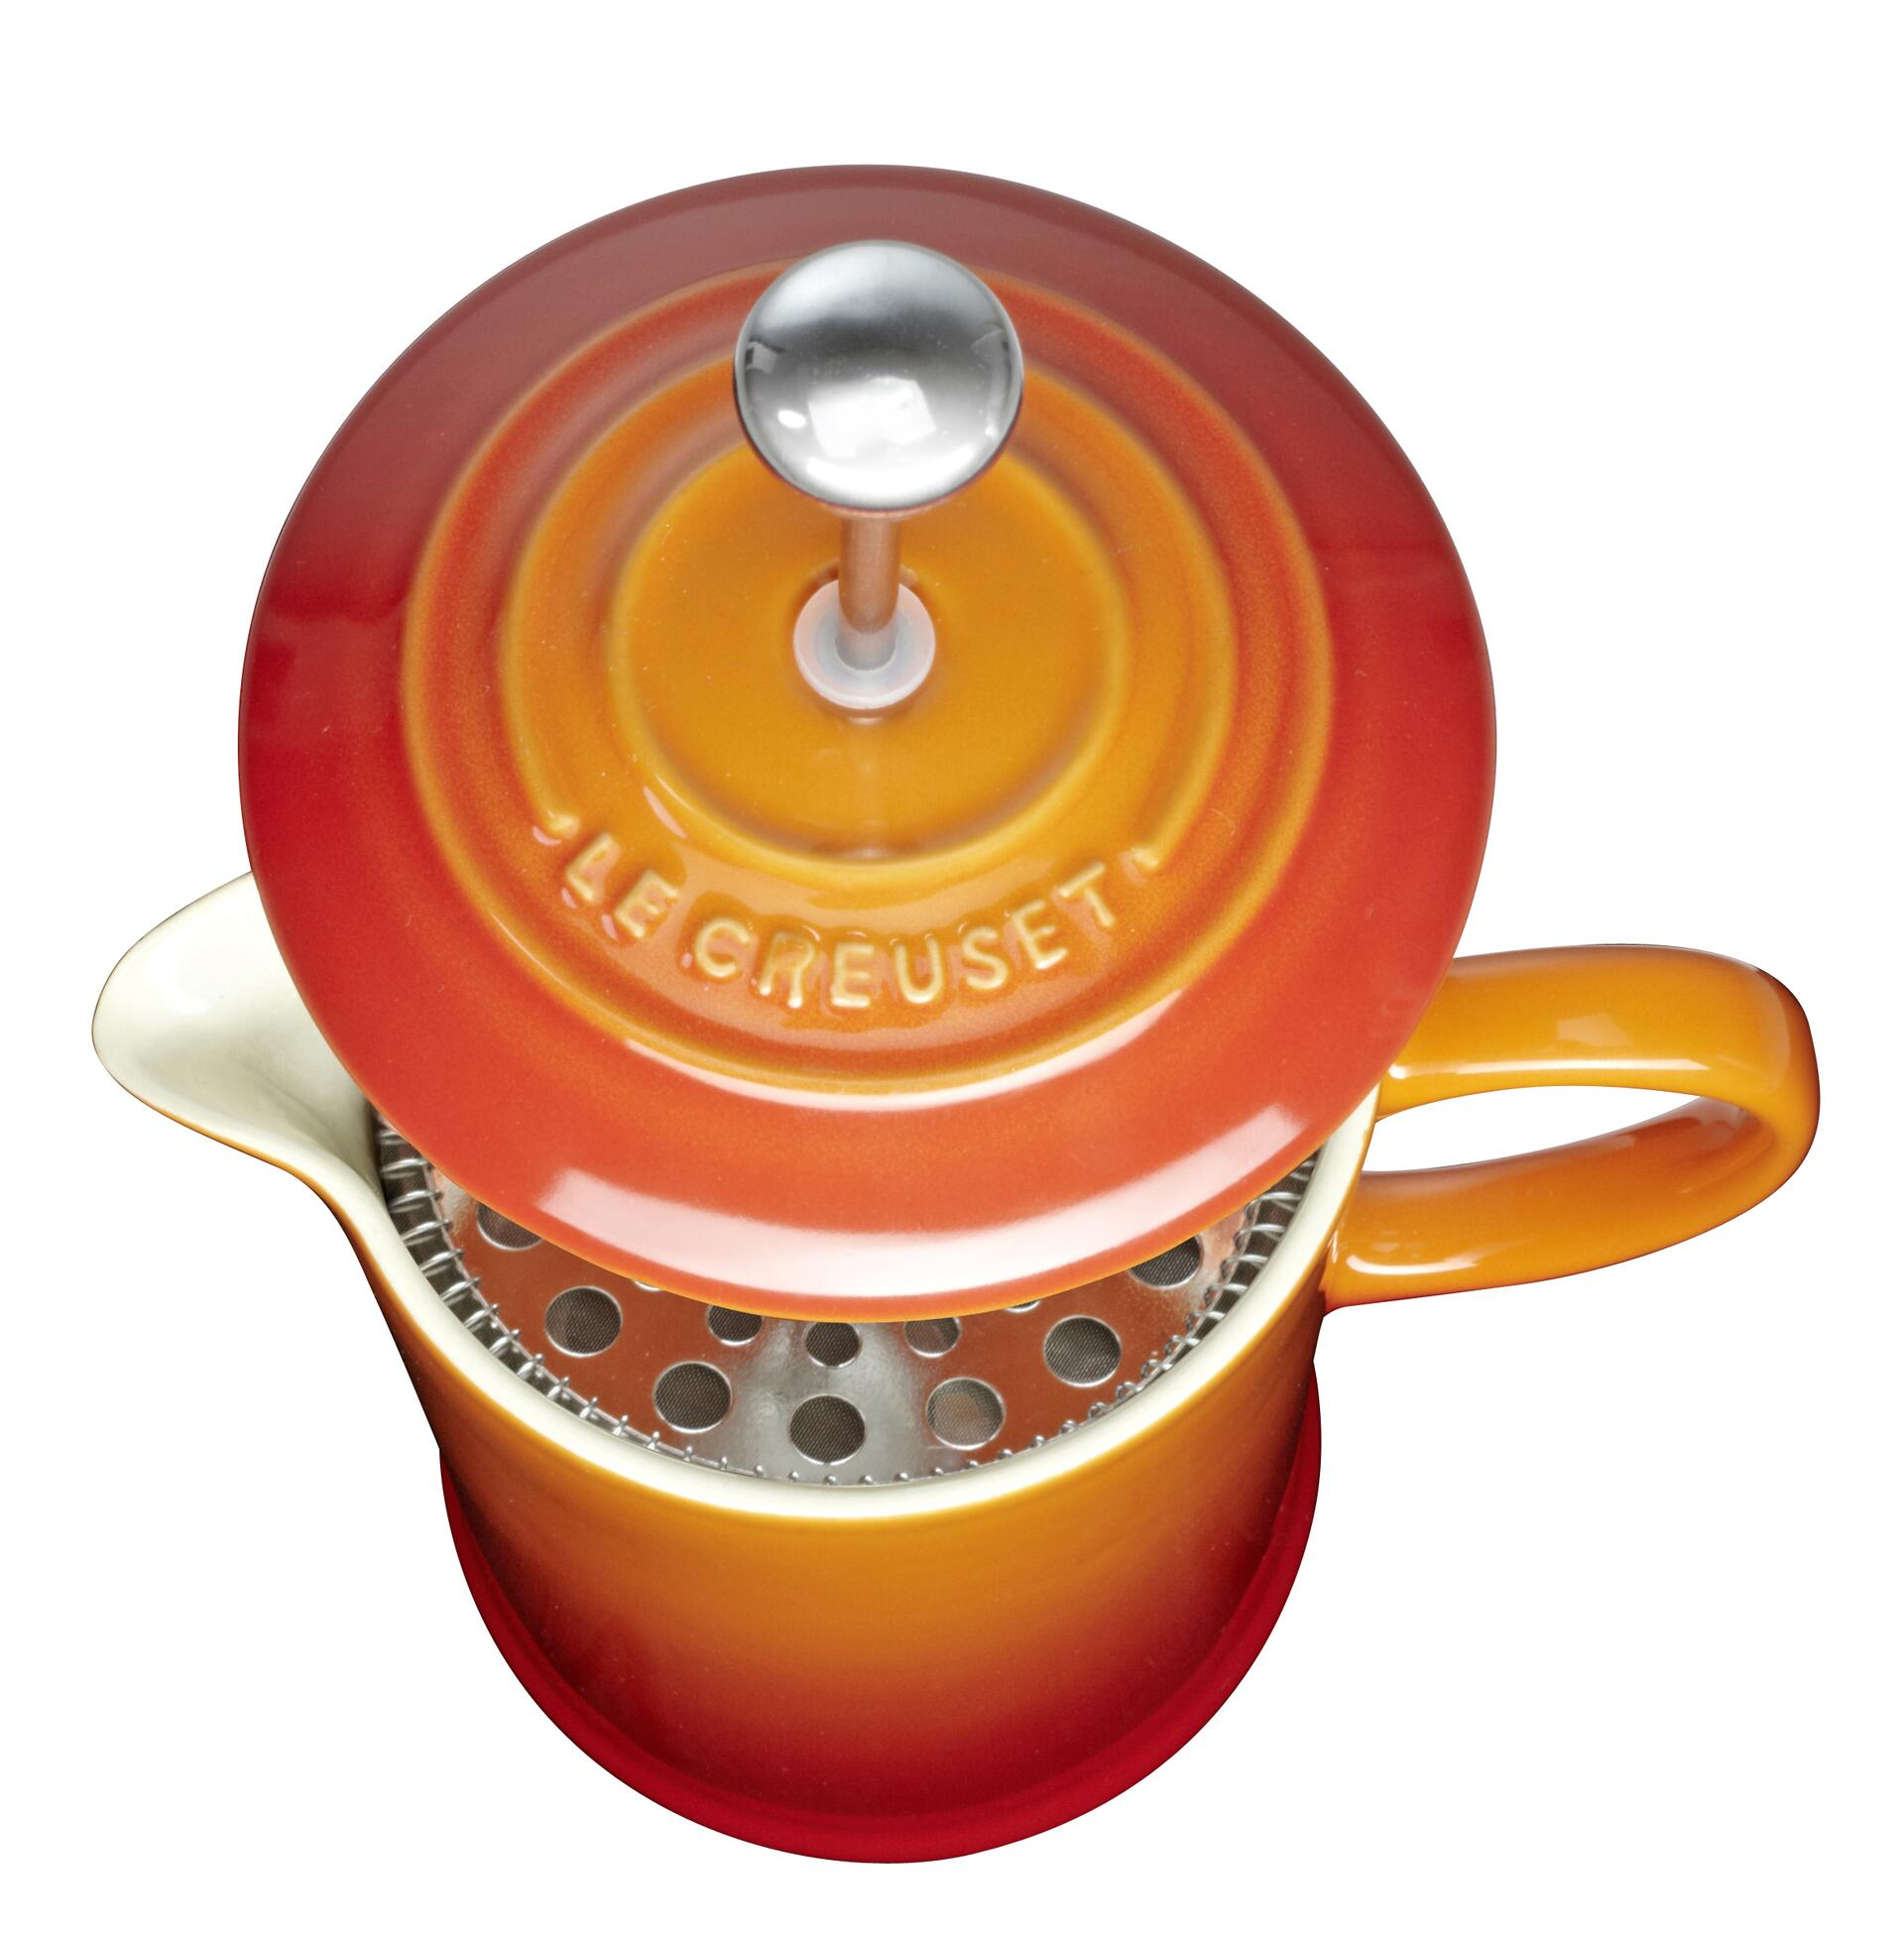 Le Creuset Kaffee-Bereiter Ofenrot